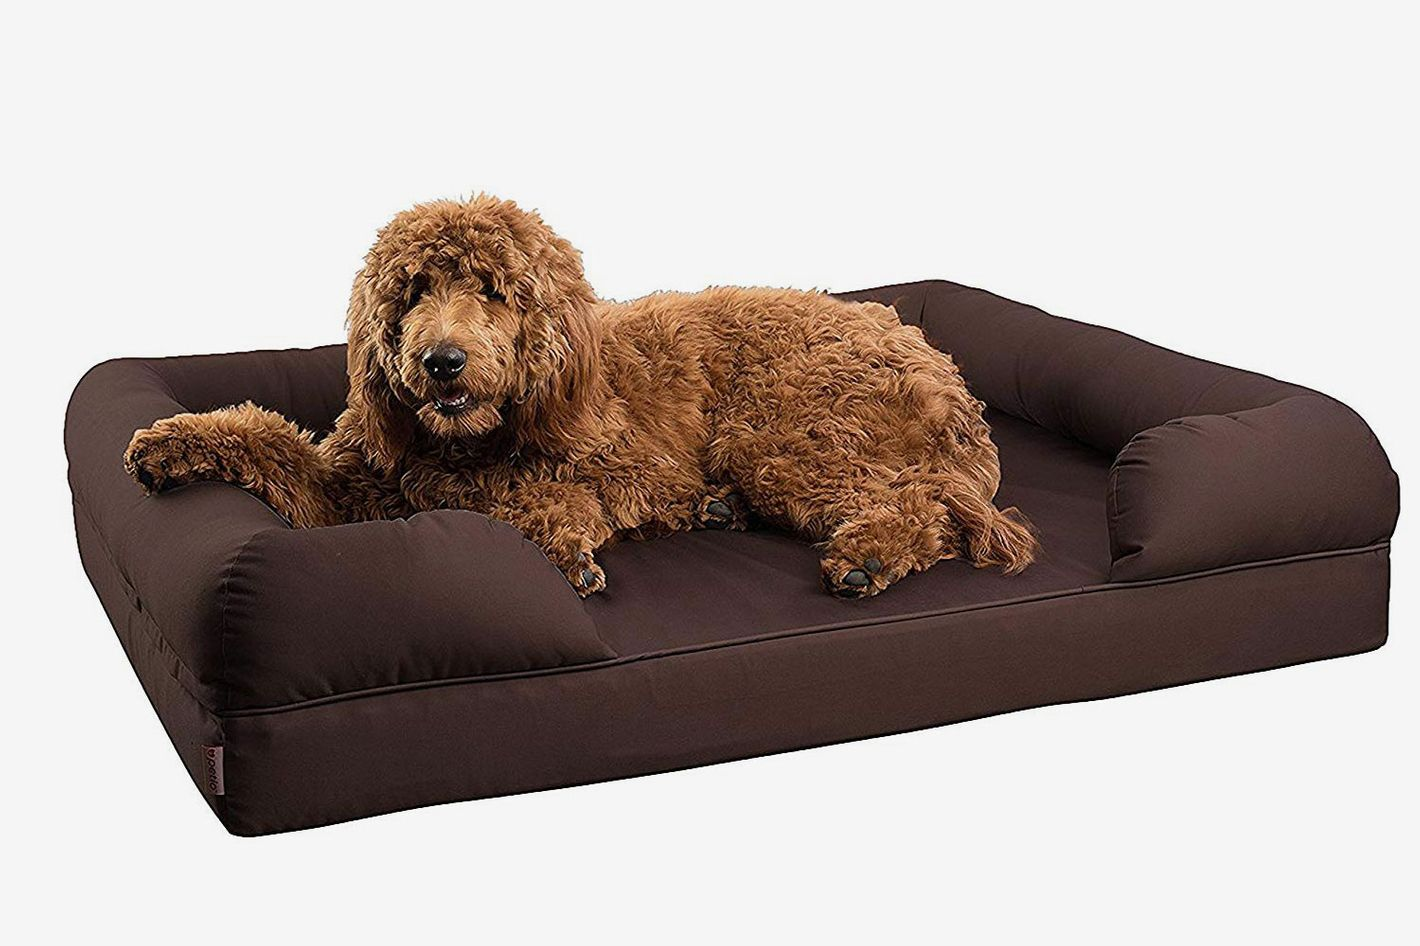 15 Best Dog Beds 2019 Foam Suede Shag Cooling